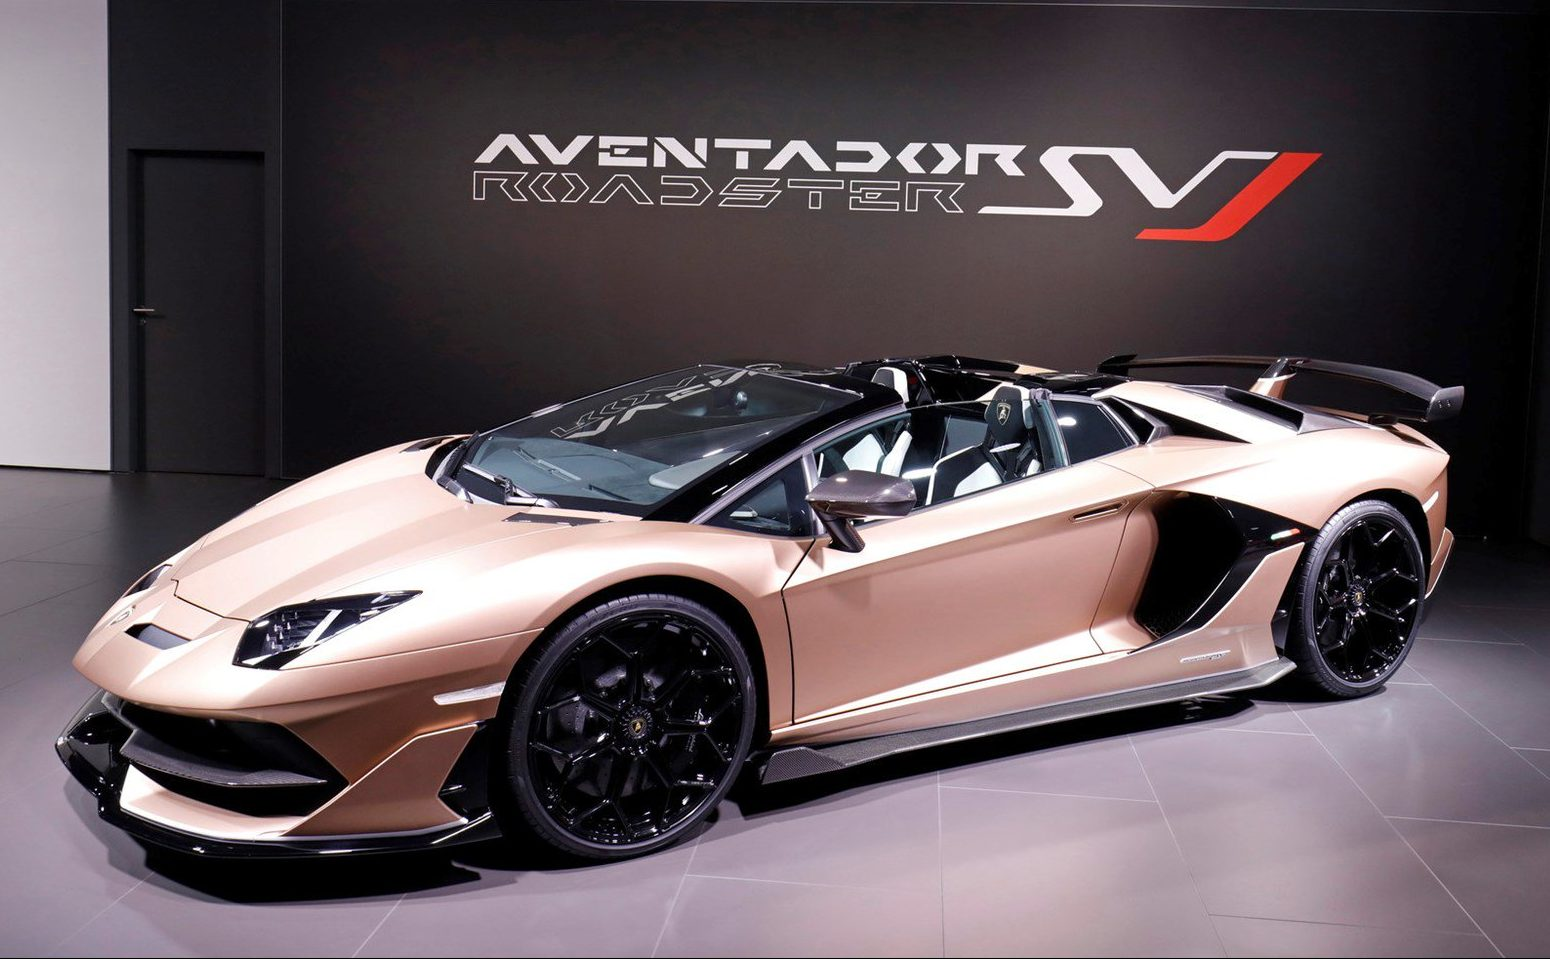 Lamborghini Aventador Svj Roadster Pricing For South Africa